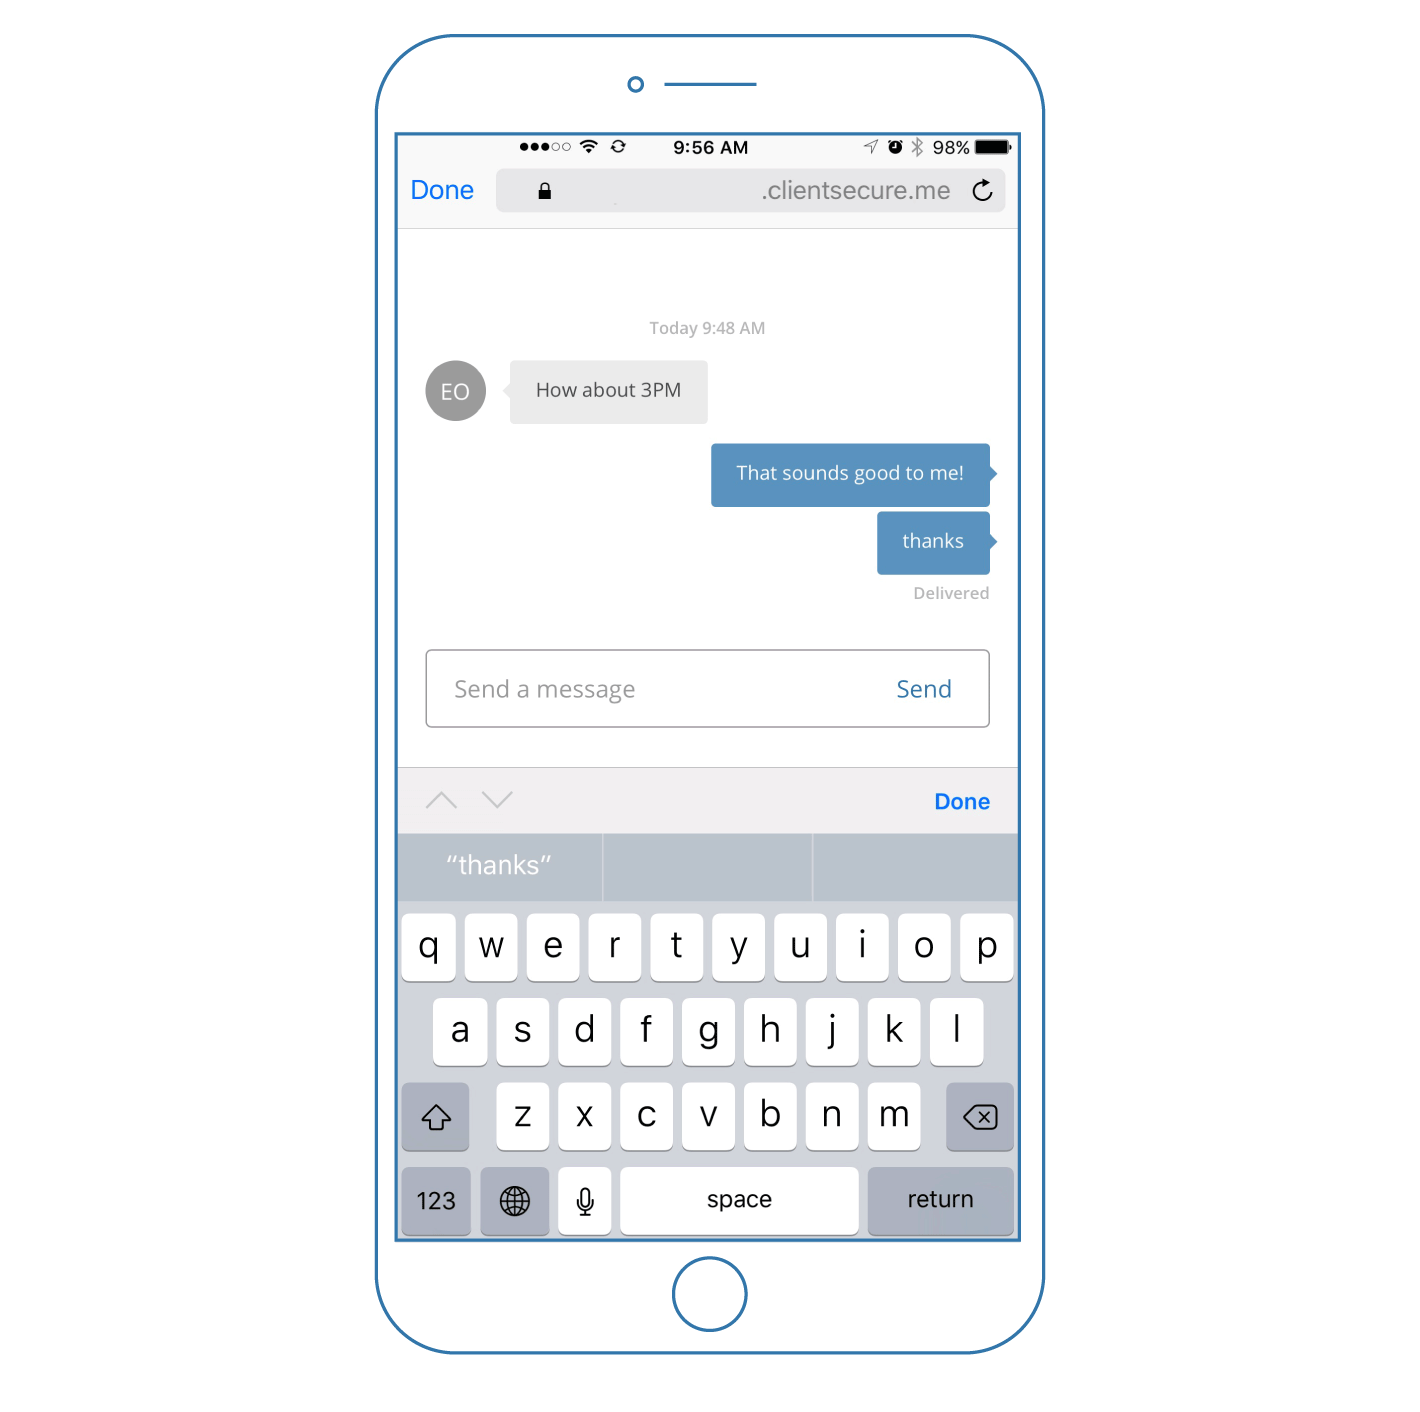 You can send and receive secure messages on your mobile device with SimplePractice